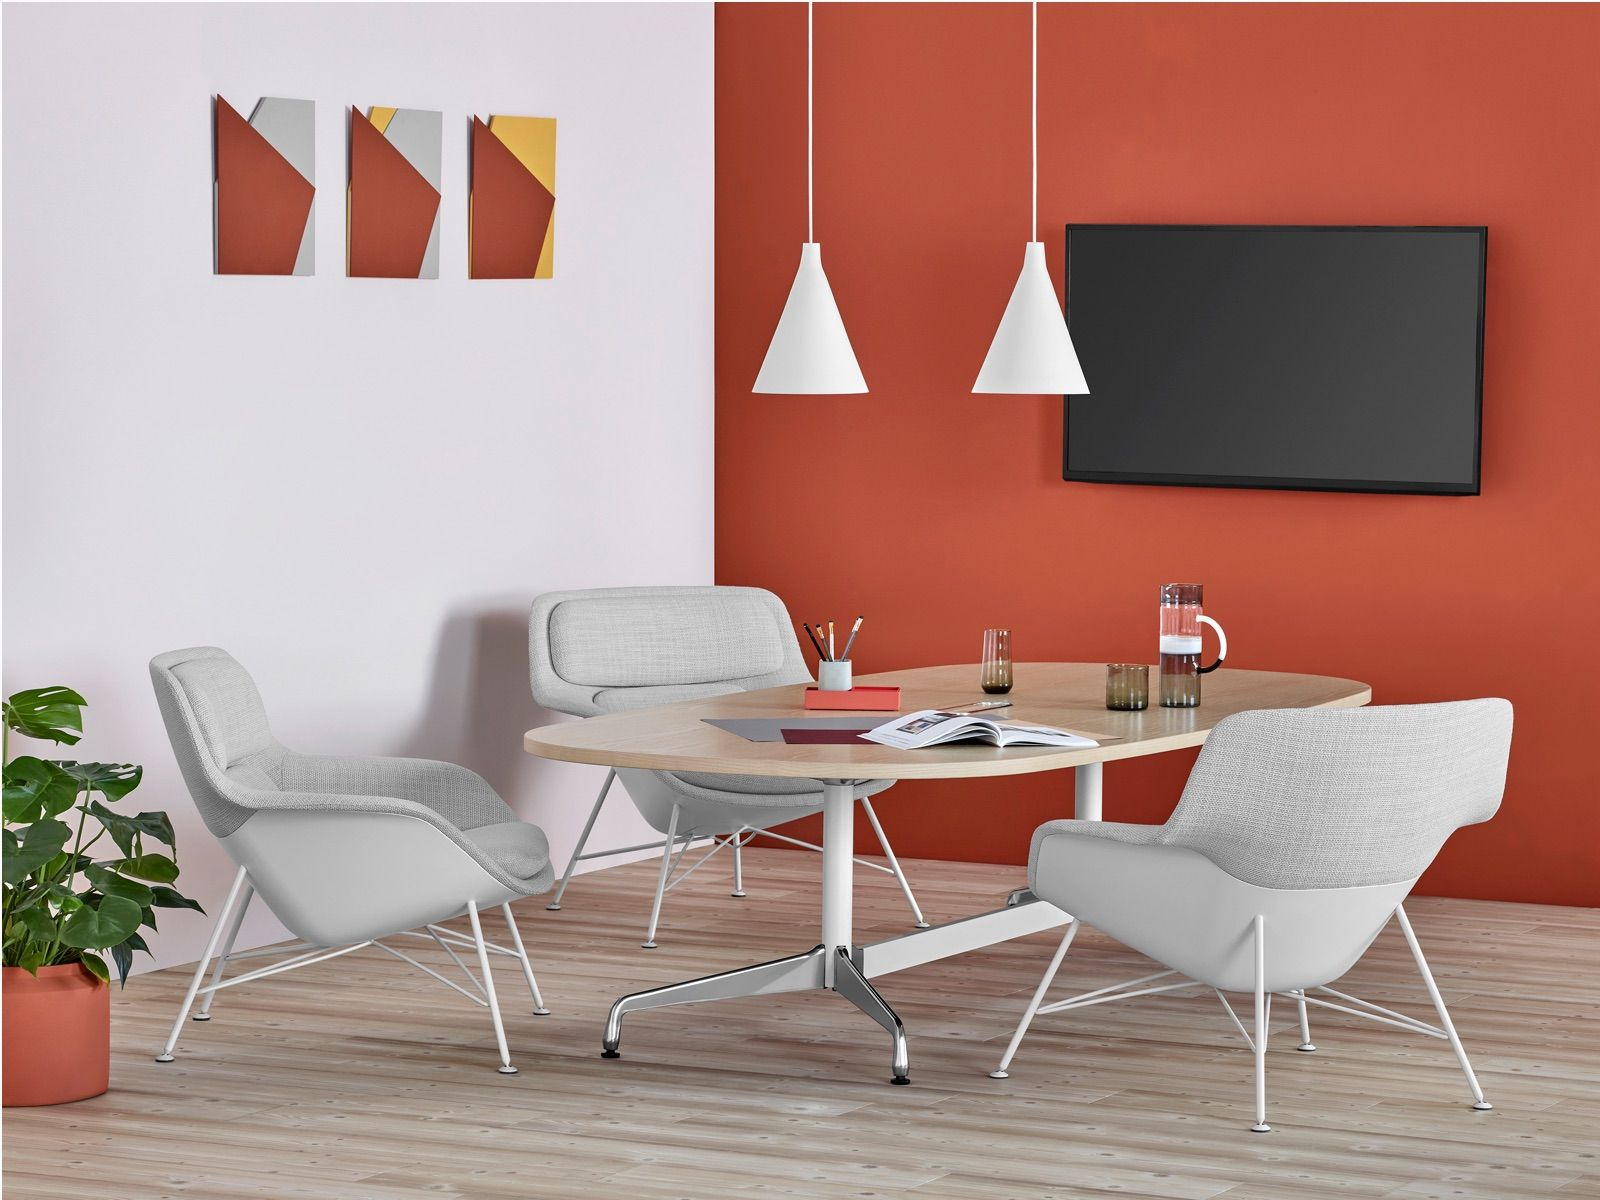 Striad Lounge Seating Herman Miller Chair and